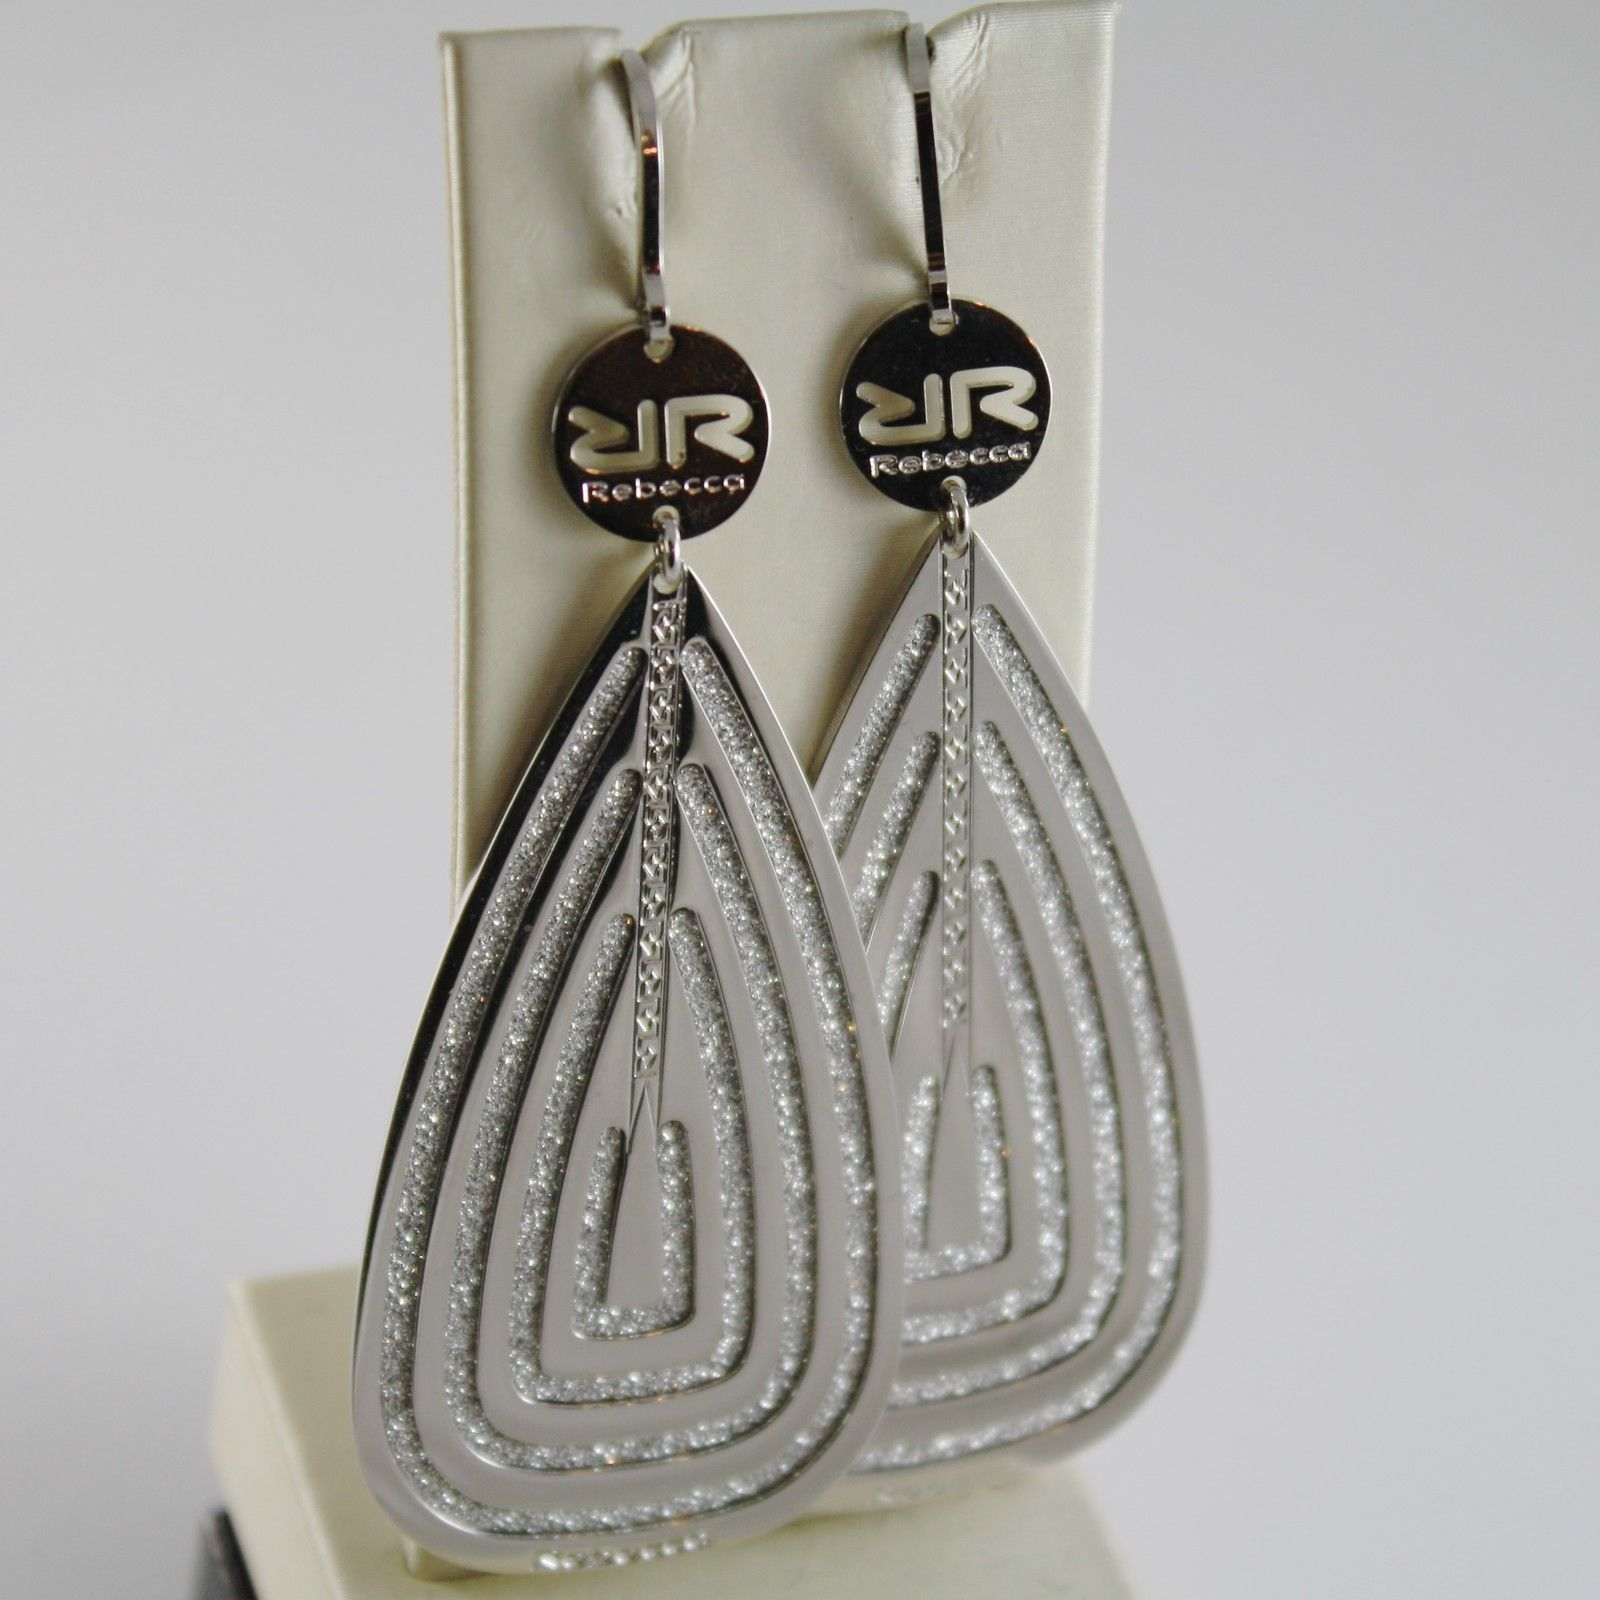 WHITE GOLD PLATED BRONZE REBECCA EARRINGS BIG DROP INFINITY GLAM MADE IN ITALY